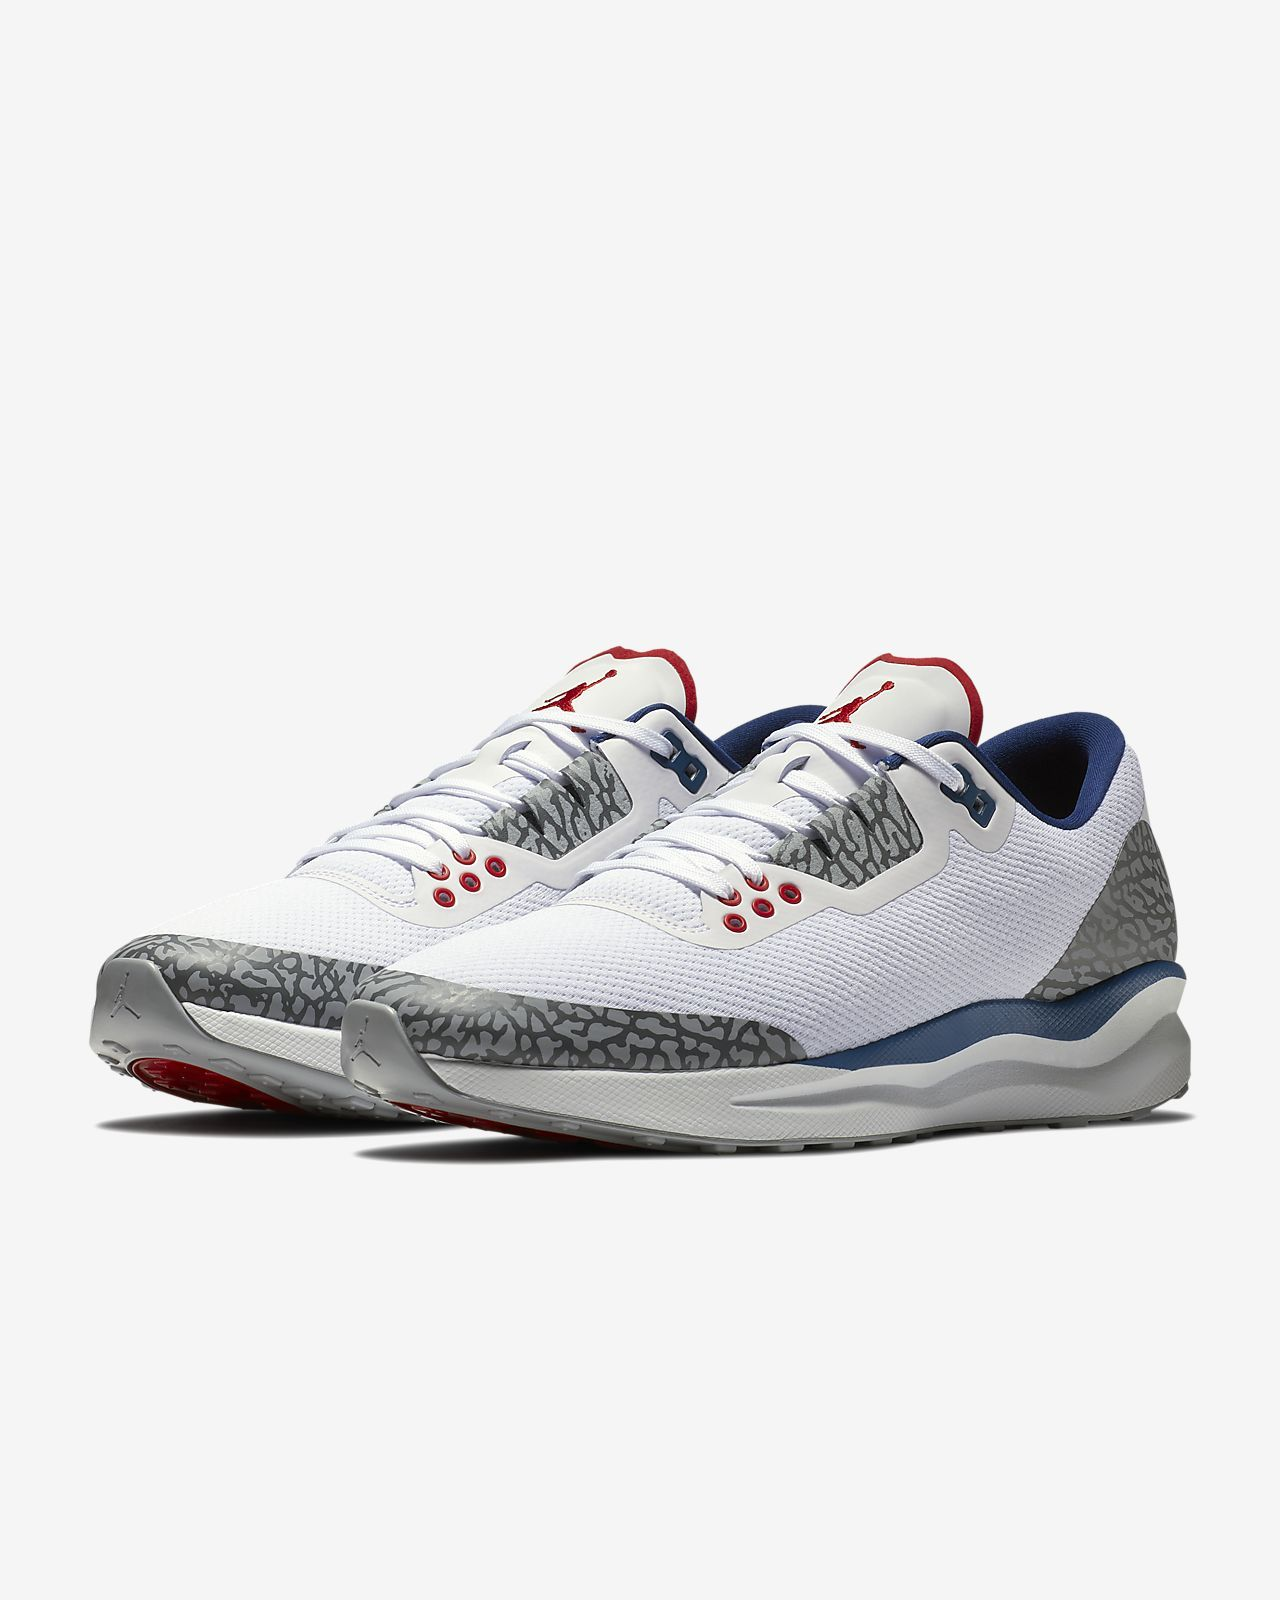 brand new aea06 da708 Jordan Zoom Tenacity 88 Men's Running Shoe in 2019 | sporty shoes ...